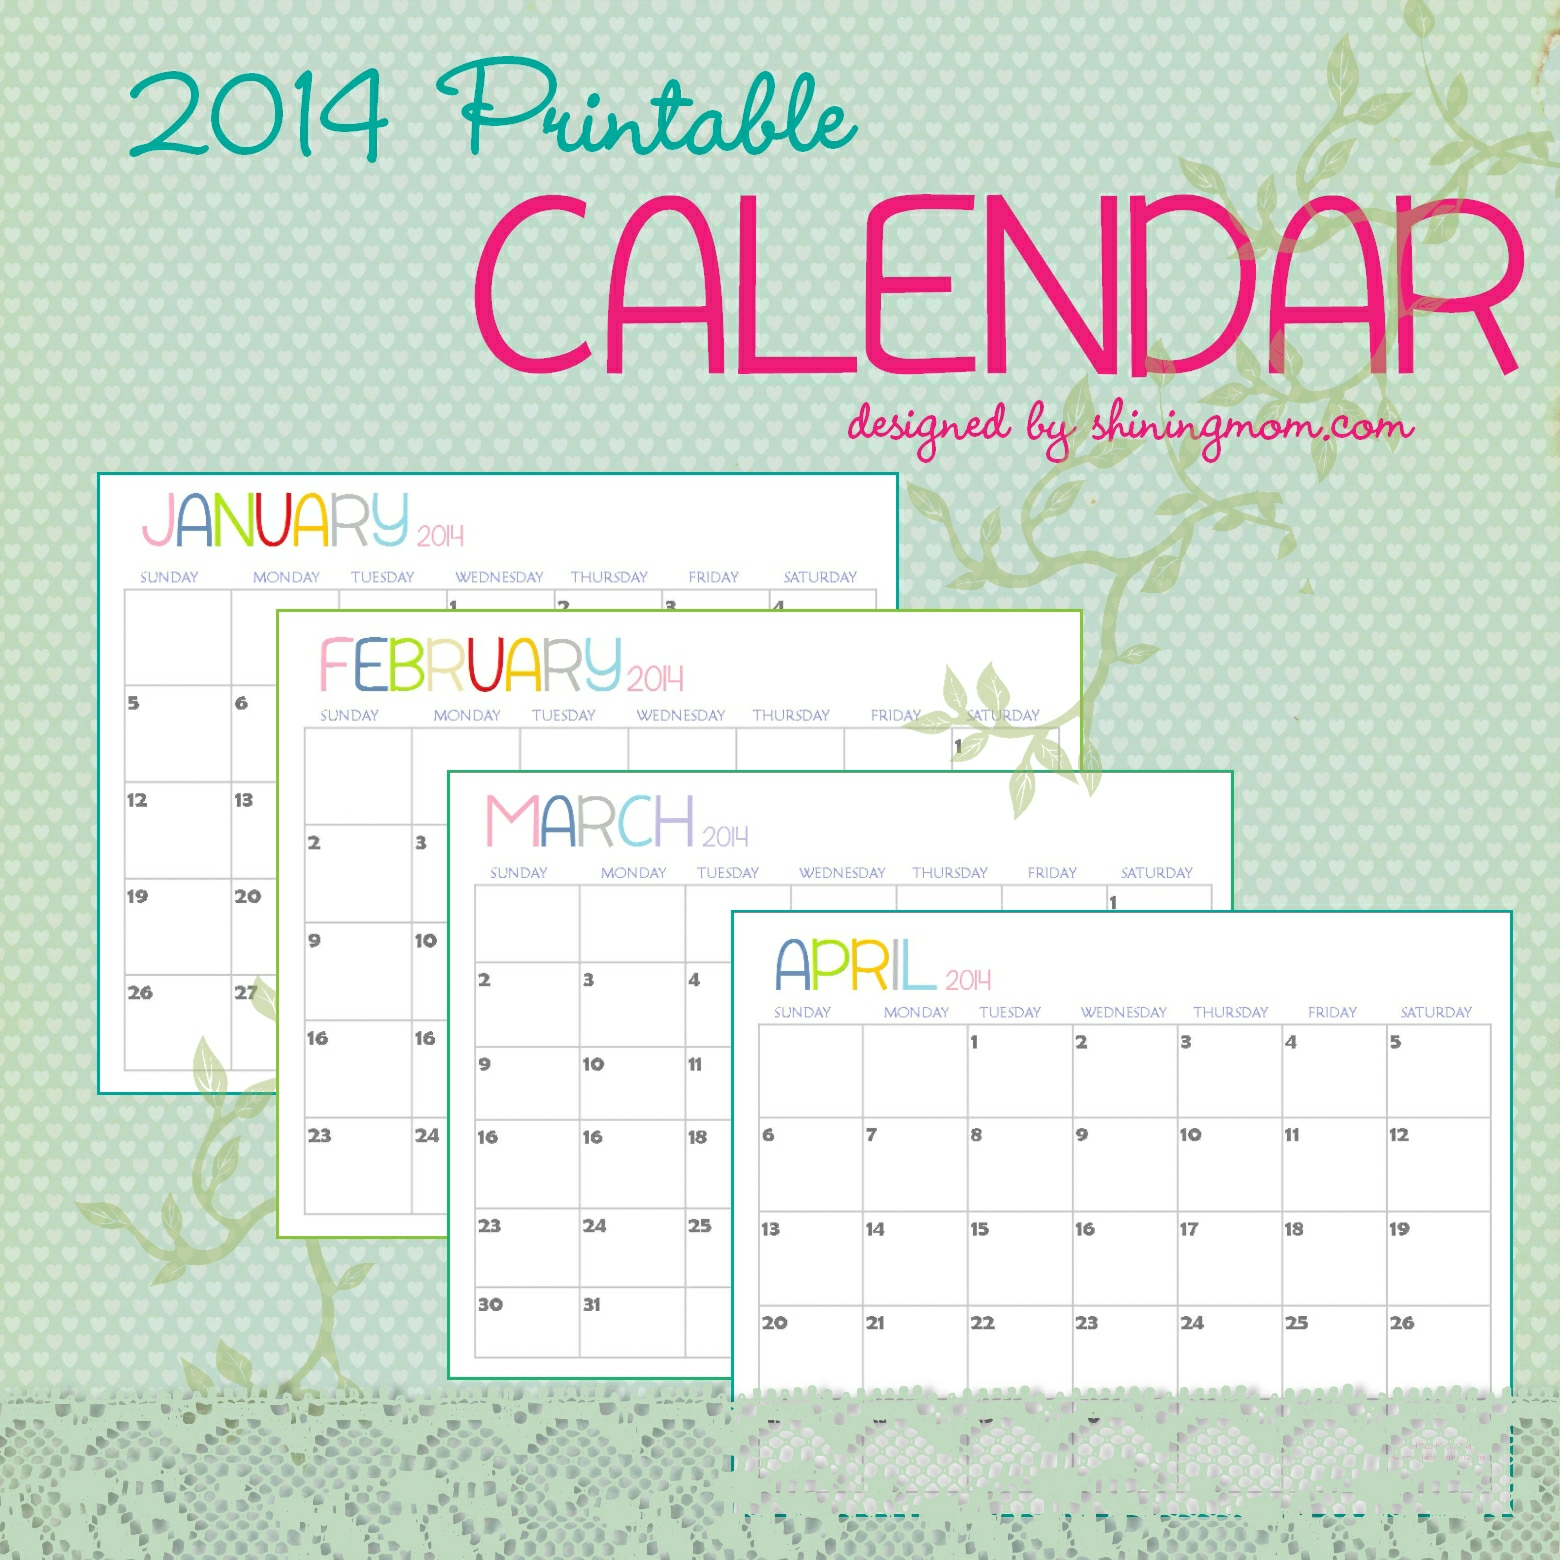 The Free Printable 2014 Calendar by Shining Mom.is here!